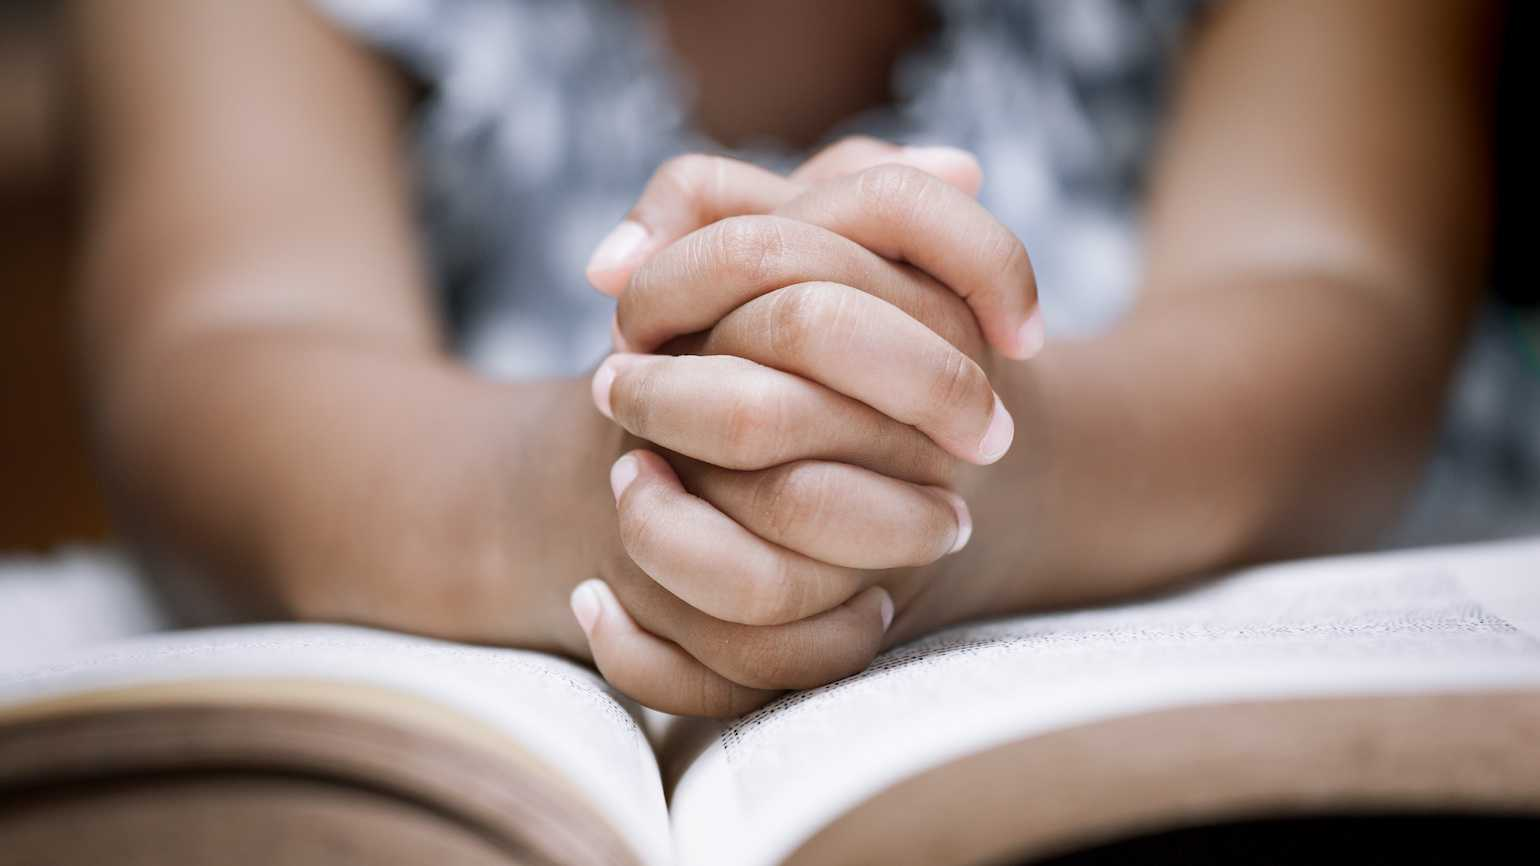 6 Bible Verses for Healing of Mind, Body and Spirit